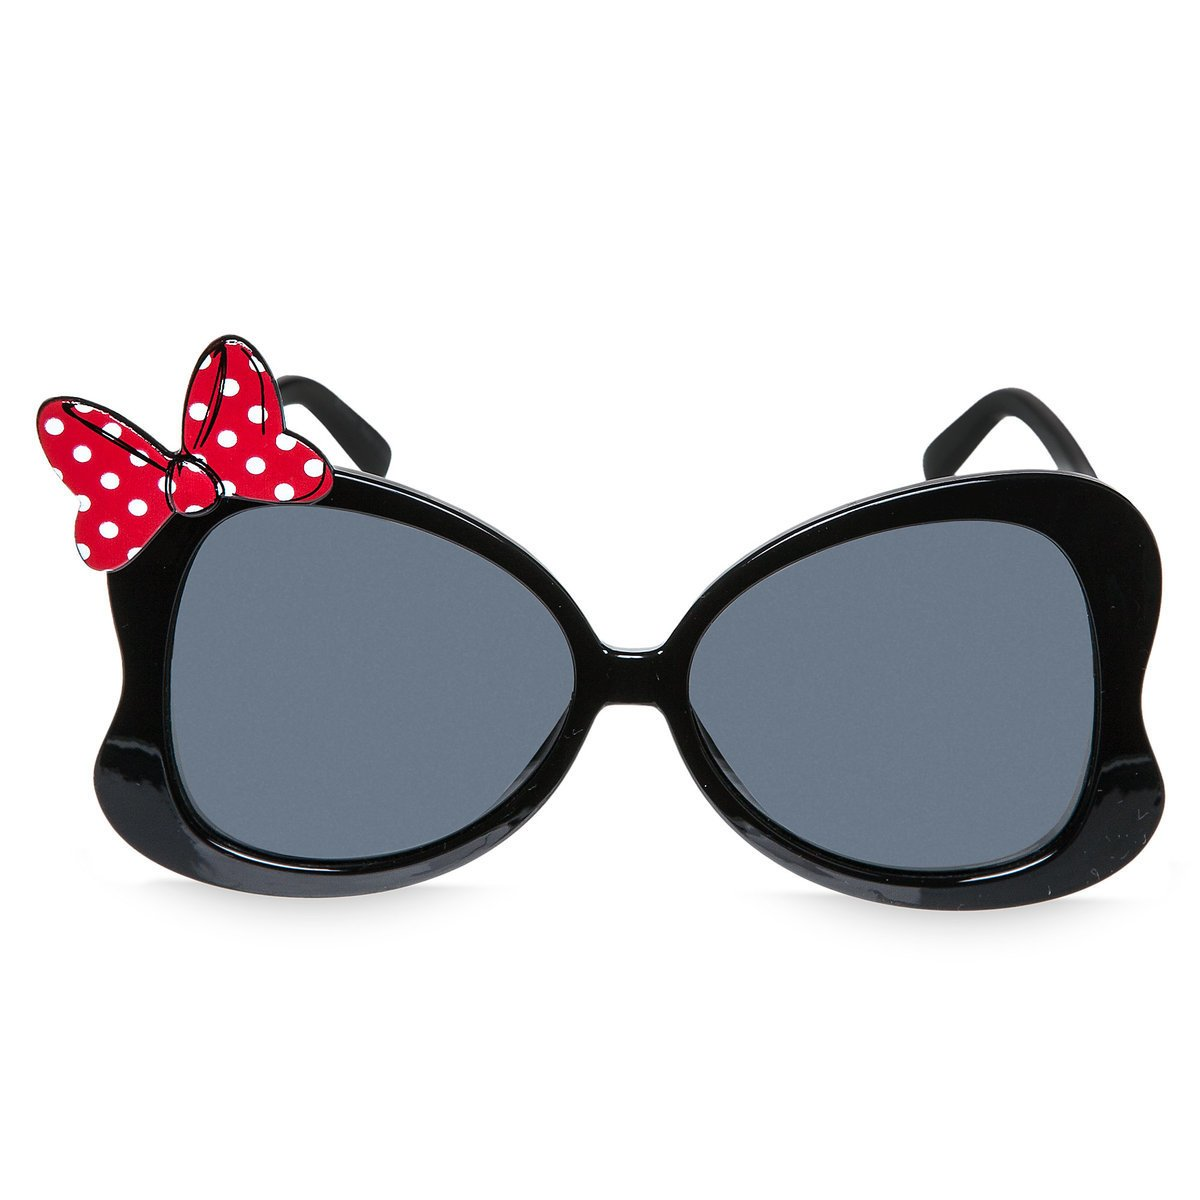 Disney Store Minnie Mouse Red Sunglasses with Bow 100% UVA and UVB protection by DS